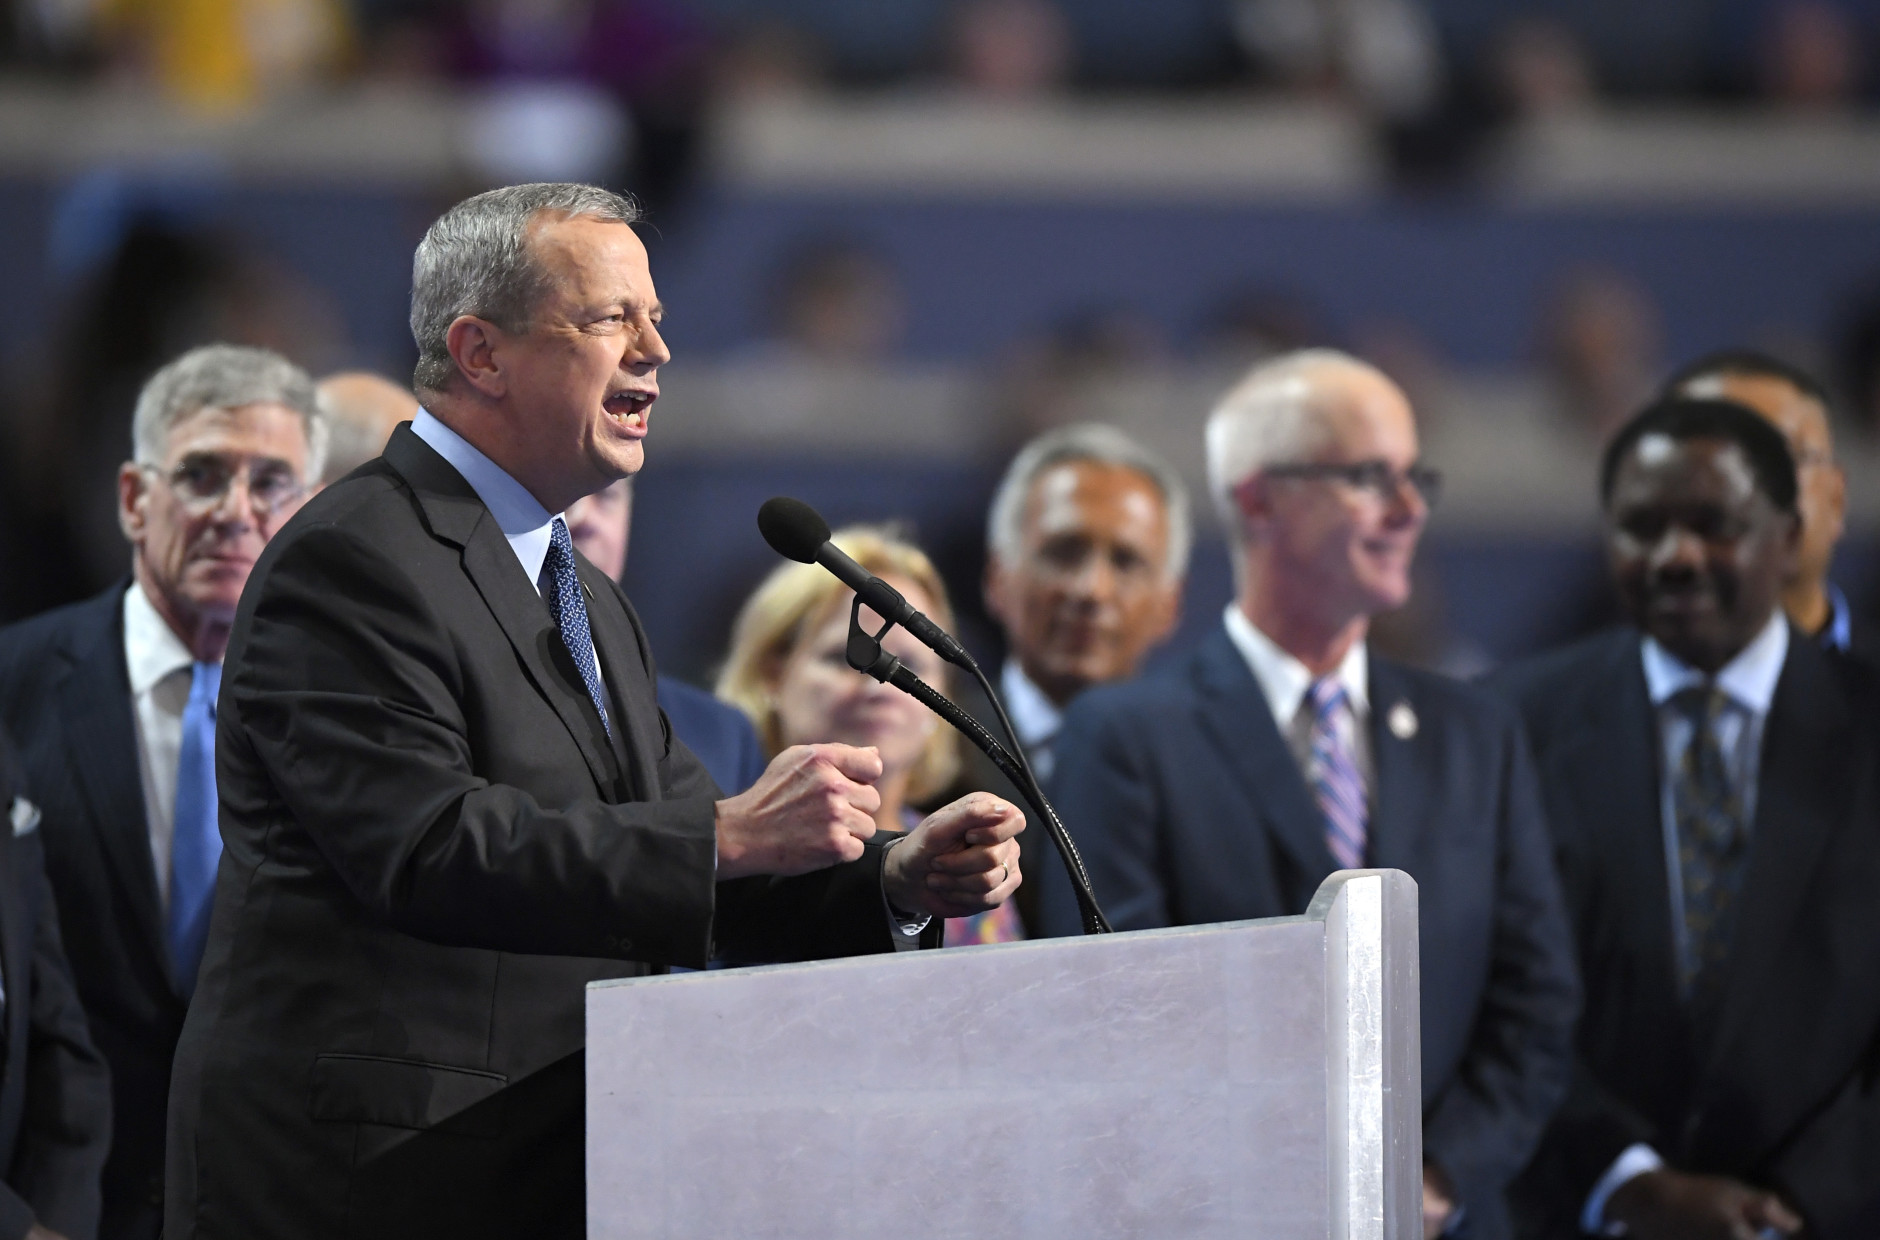 Gen. John Allen, (Ret.) speaks during the final day of the Democratic National Convention in Philadelphia , Thursday, July 28, 2016. (AP Photo/Mark J. Terrill)